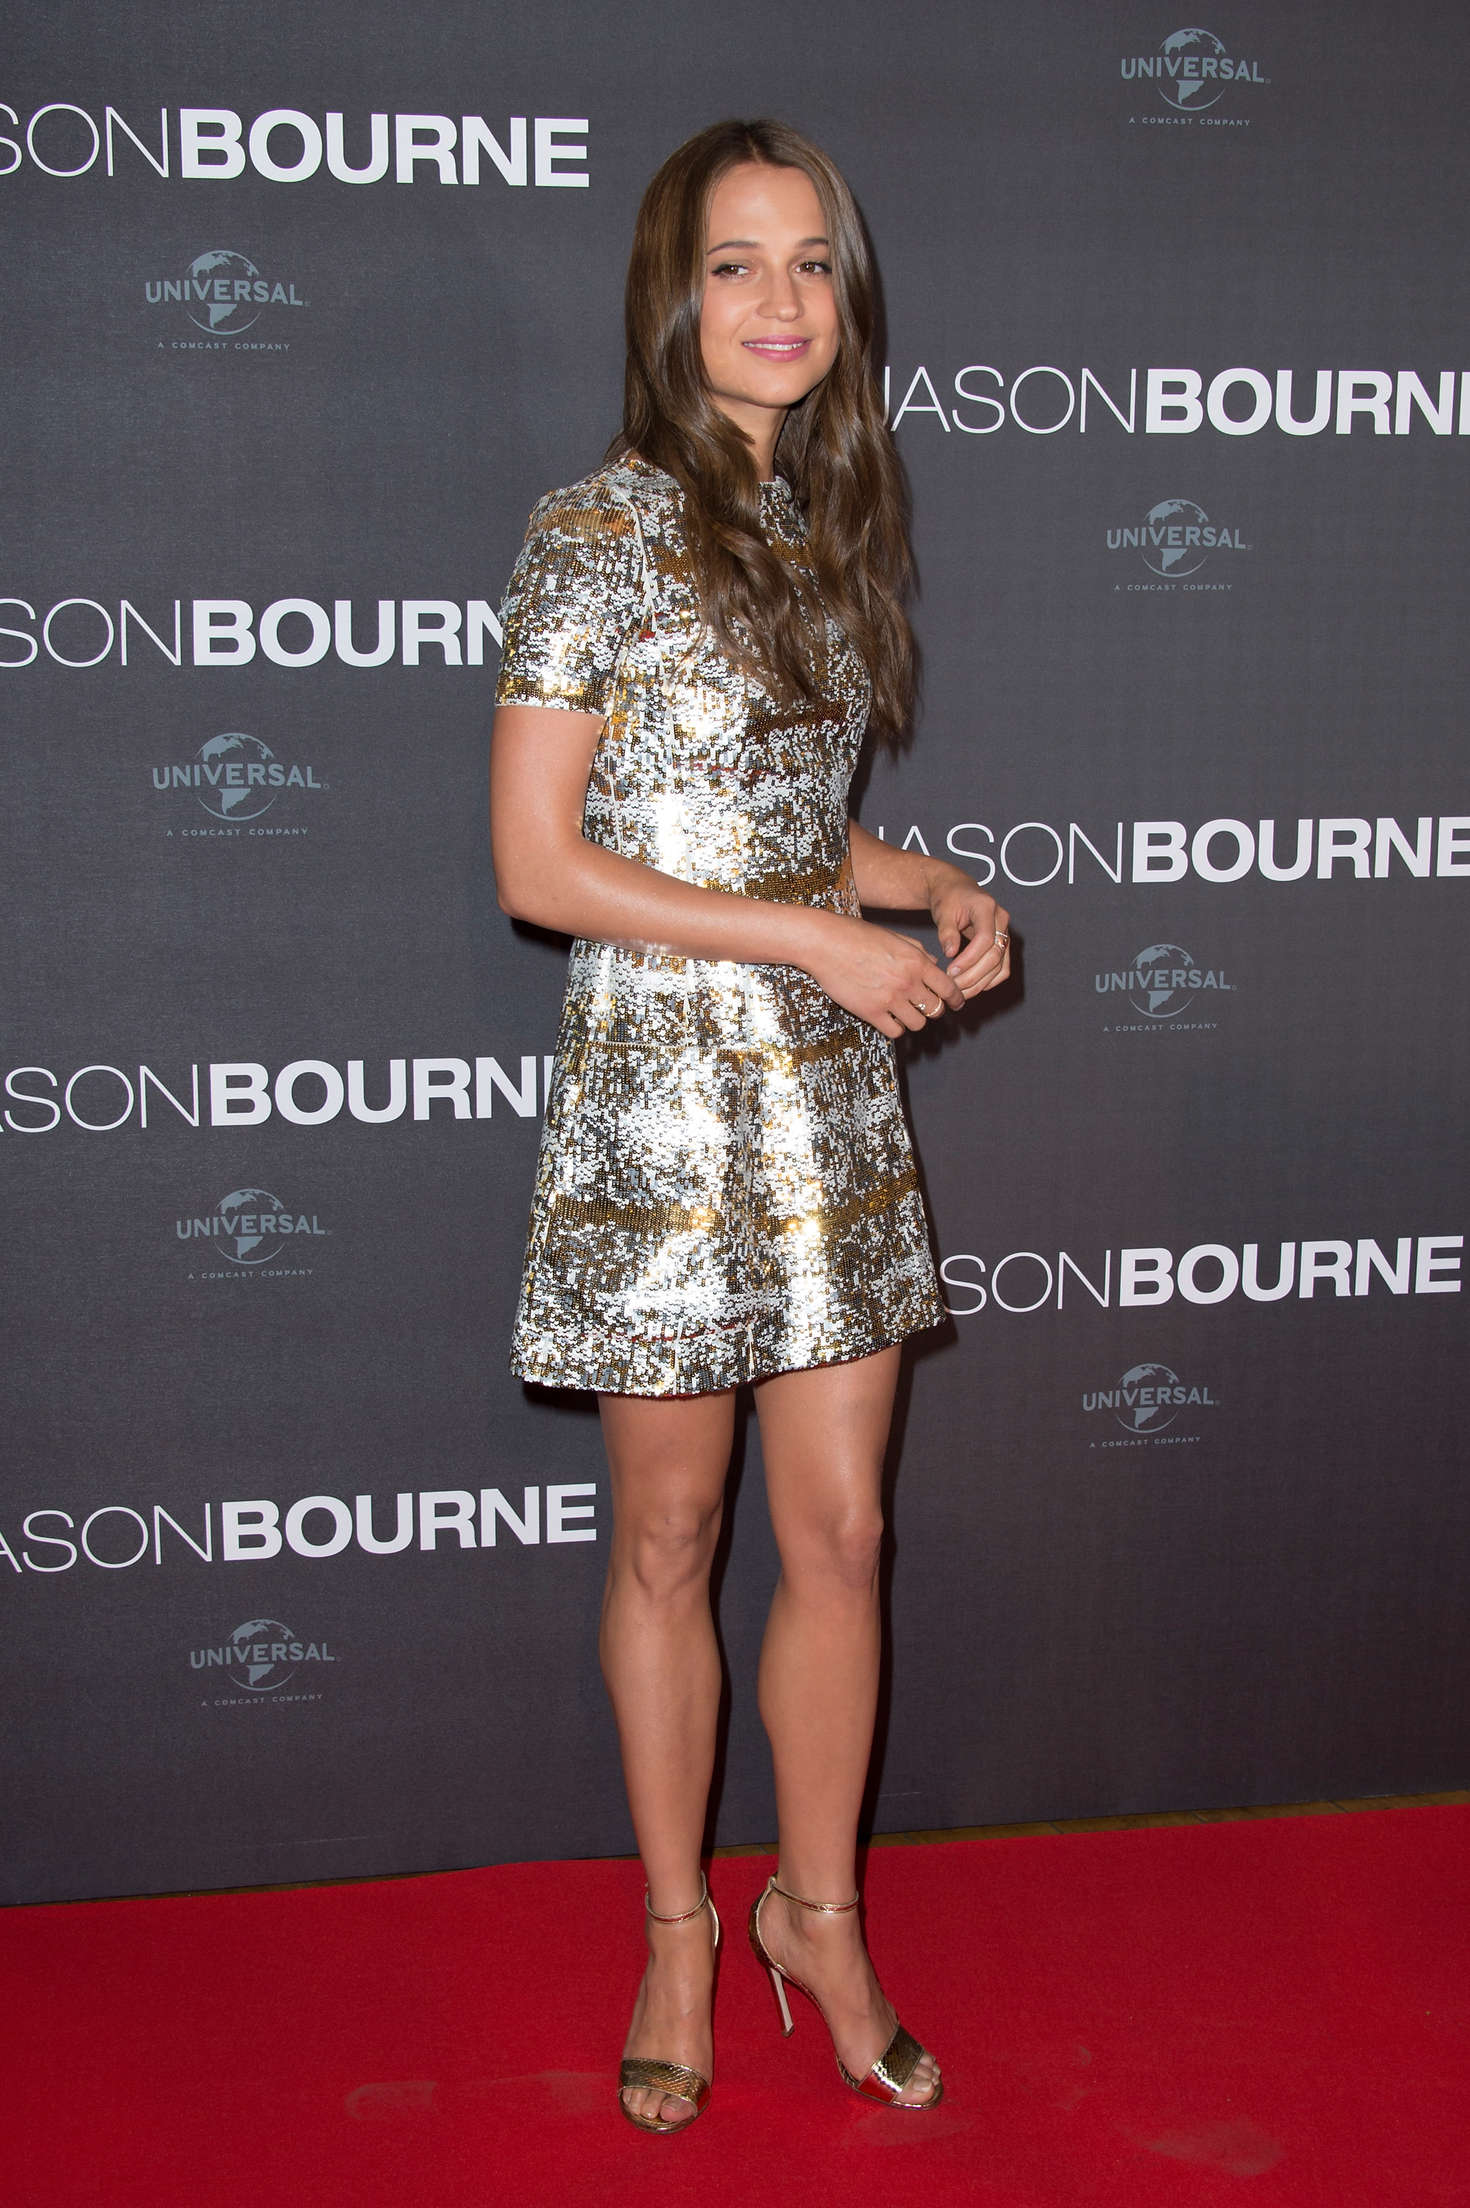 http://www.gotceleb.com/wp-content/uploads/photos/alicia-vikander/jason-bourne-premiere-in-paris/Alicia-Vikander:-Jason-Bourne-Premiere--07.jpg